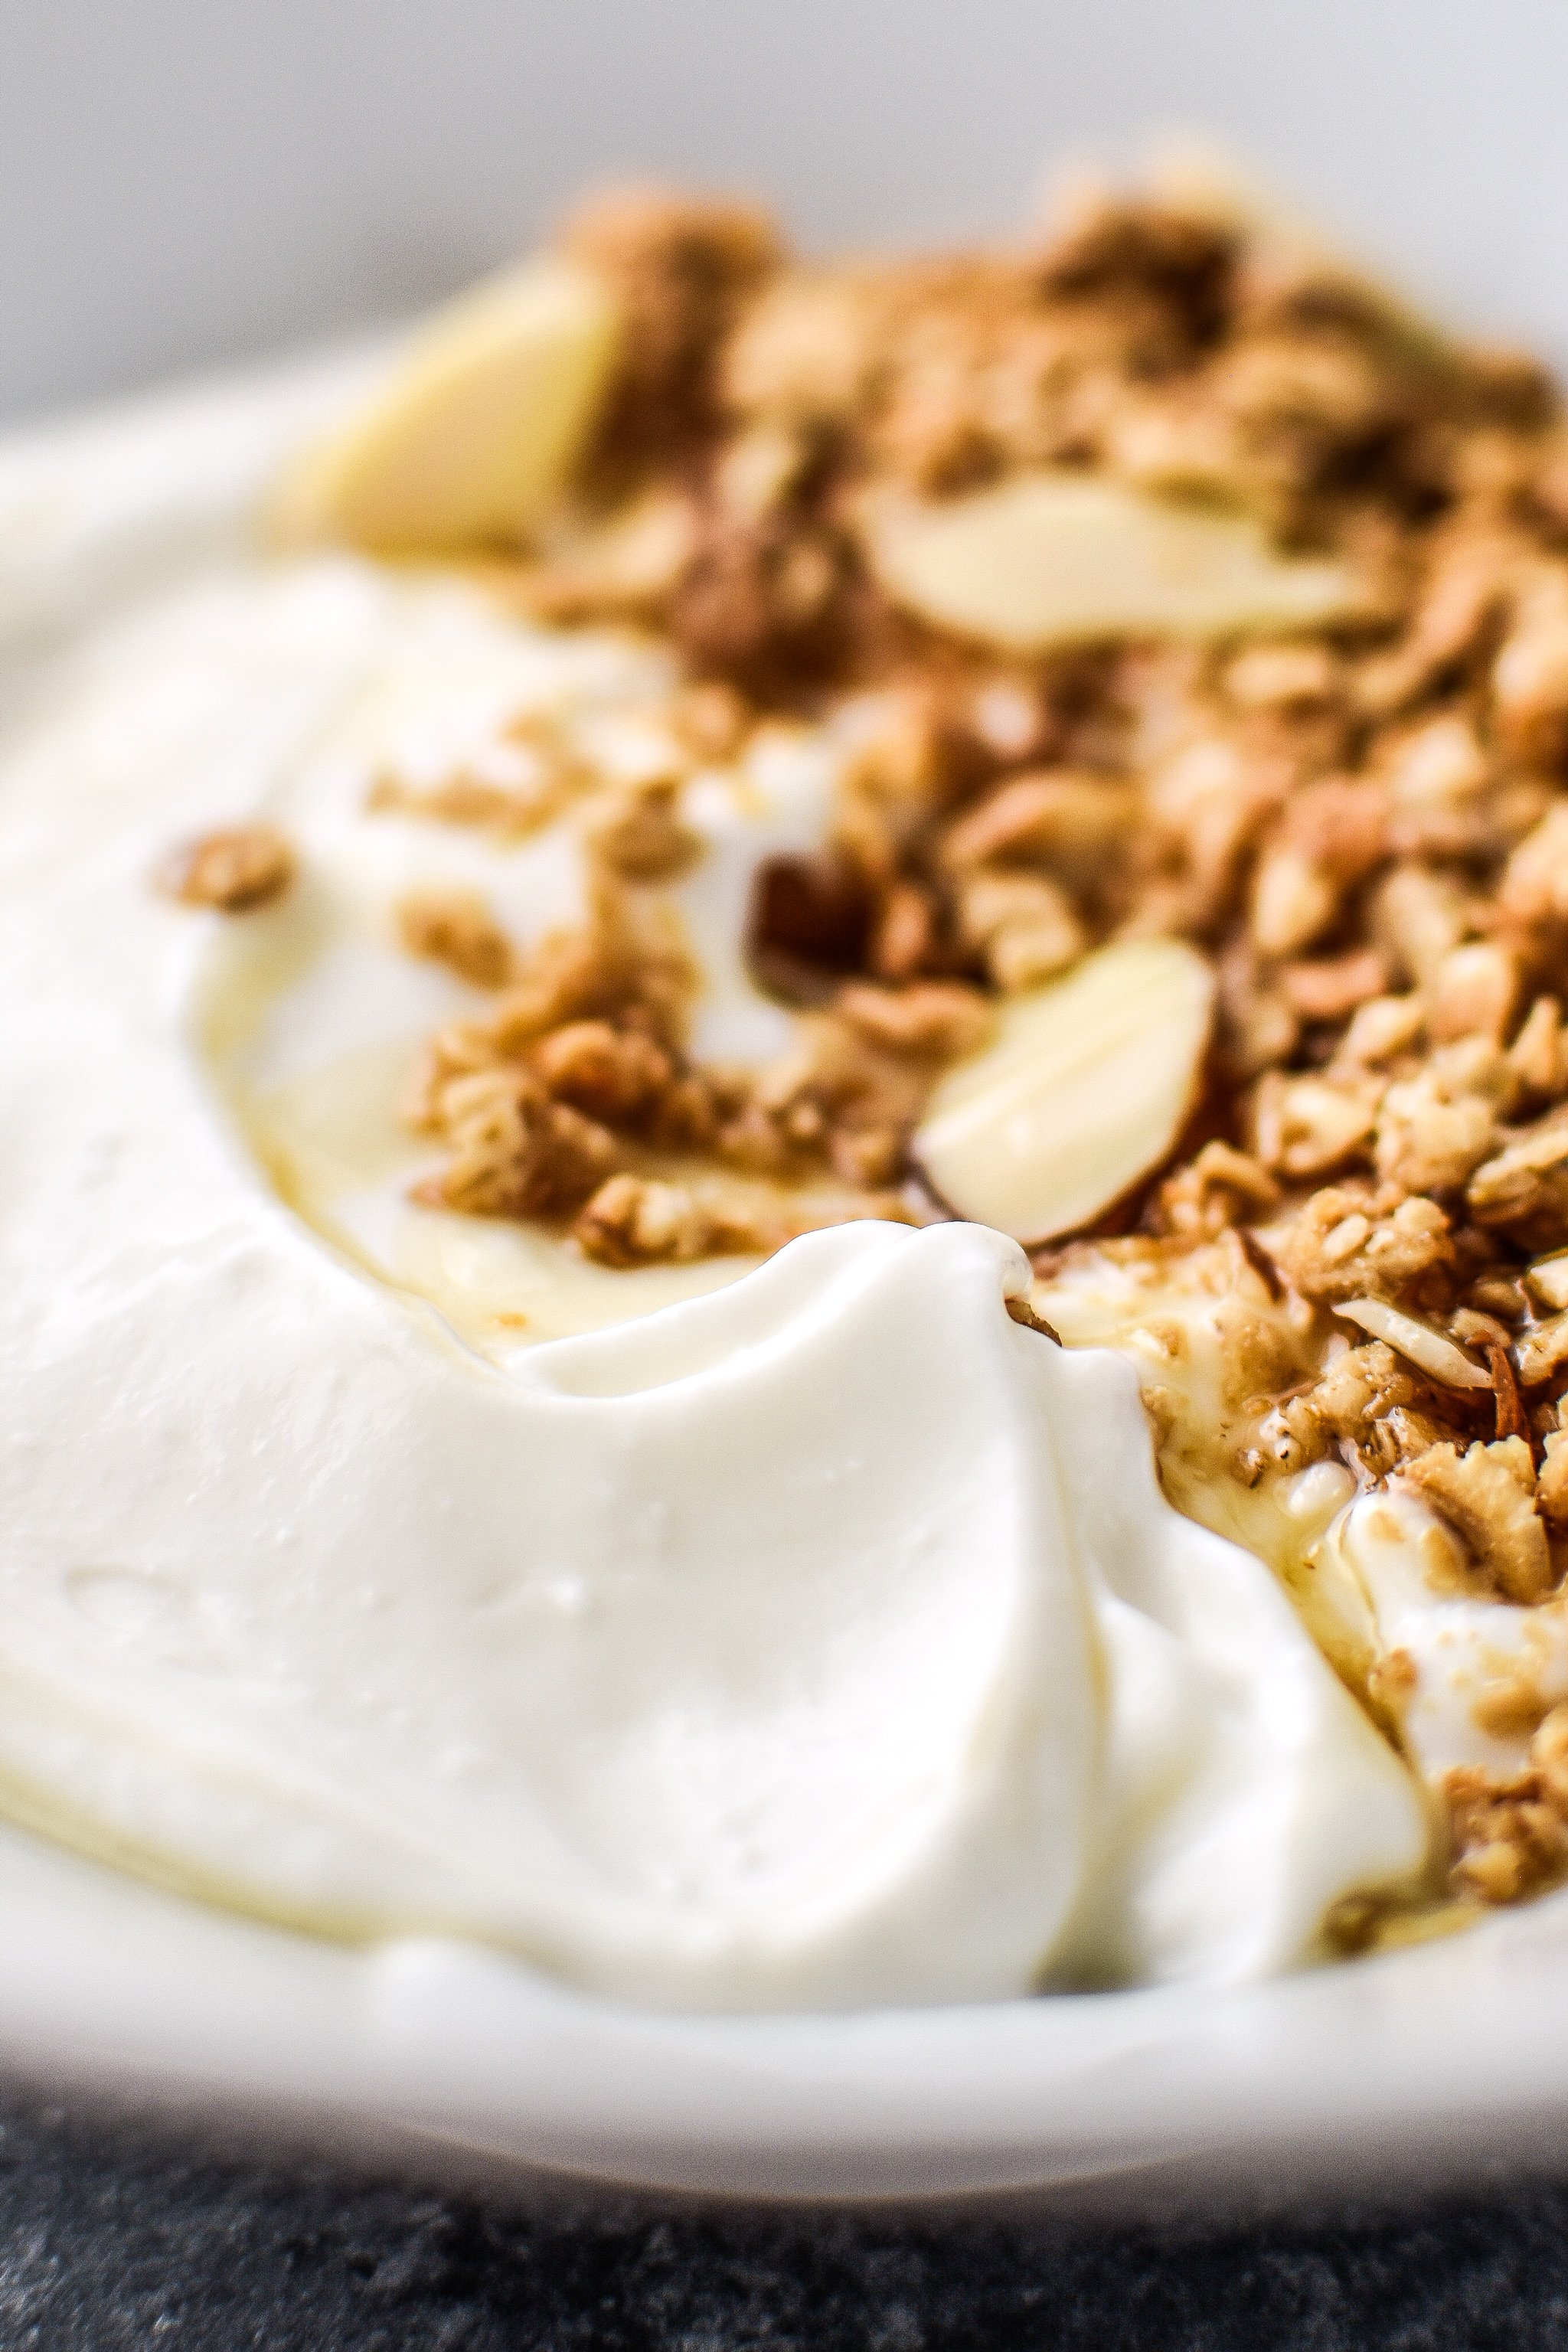 Freshly made yogurt in a bowl with granola and thin maple drizzle.